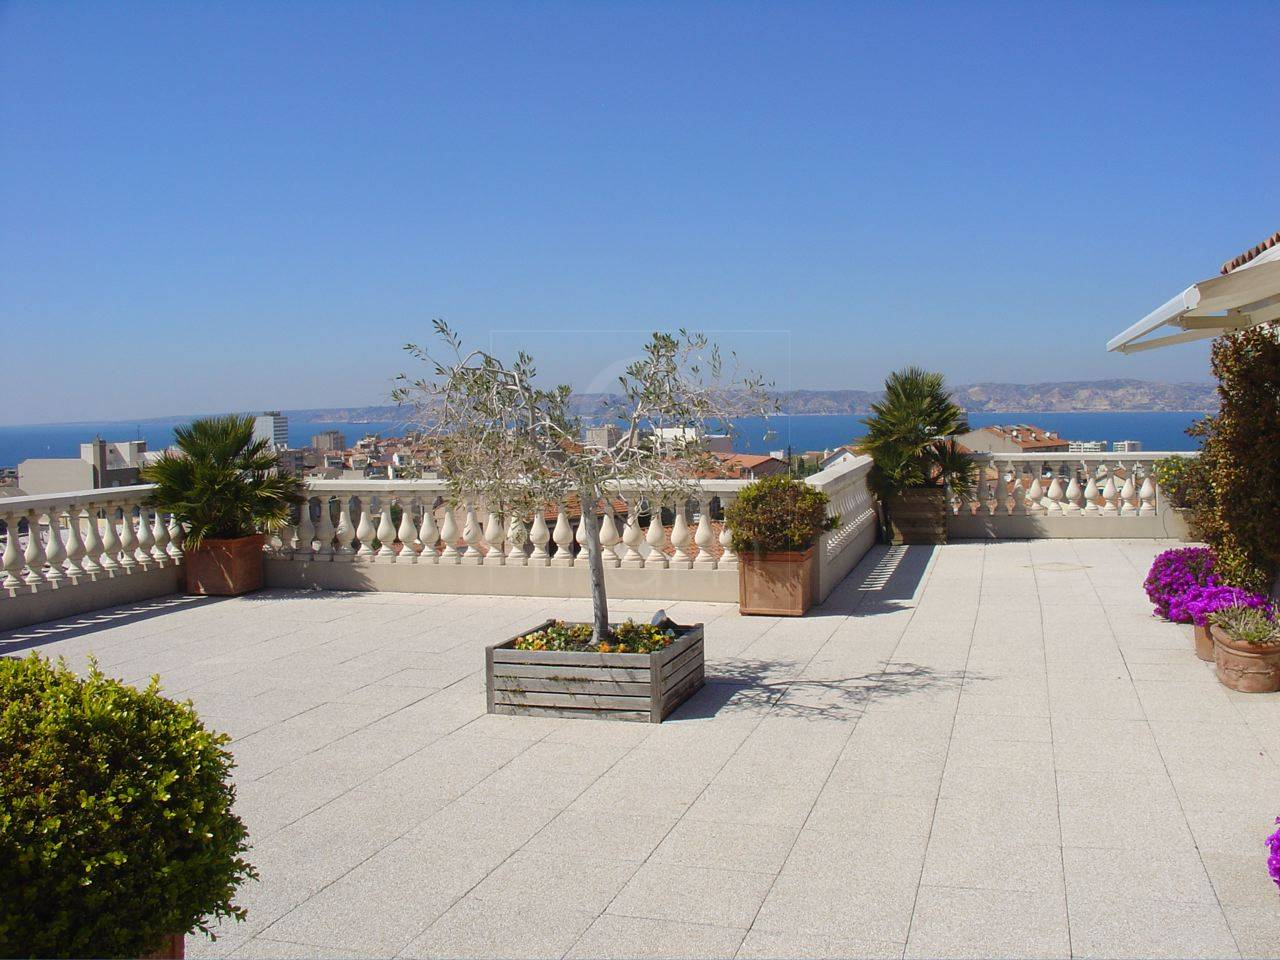 Vente appartement t4 f4 marseille 7eme terrasse et vue mer for Location appartement marseille terrasse